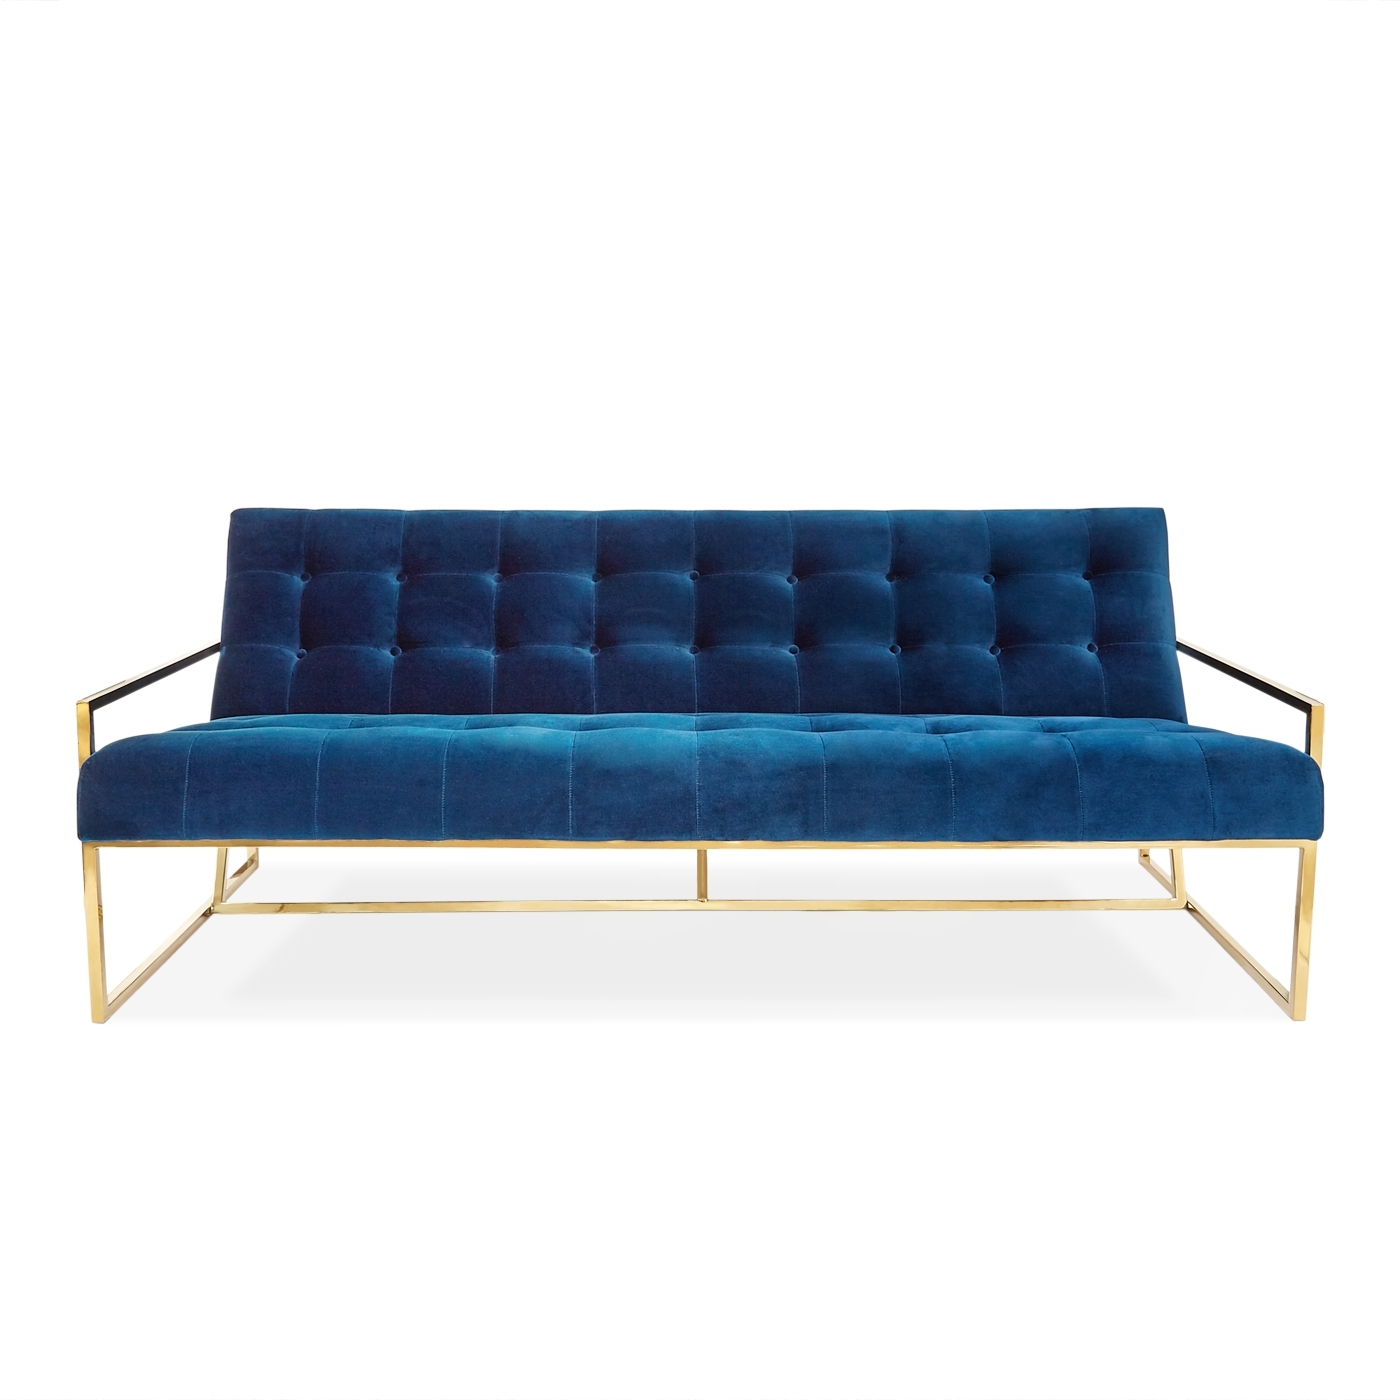 Jonathan Adler With Regard To Most Recently Released Apartment Sofas (Gallery 3 of 15)